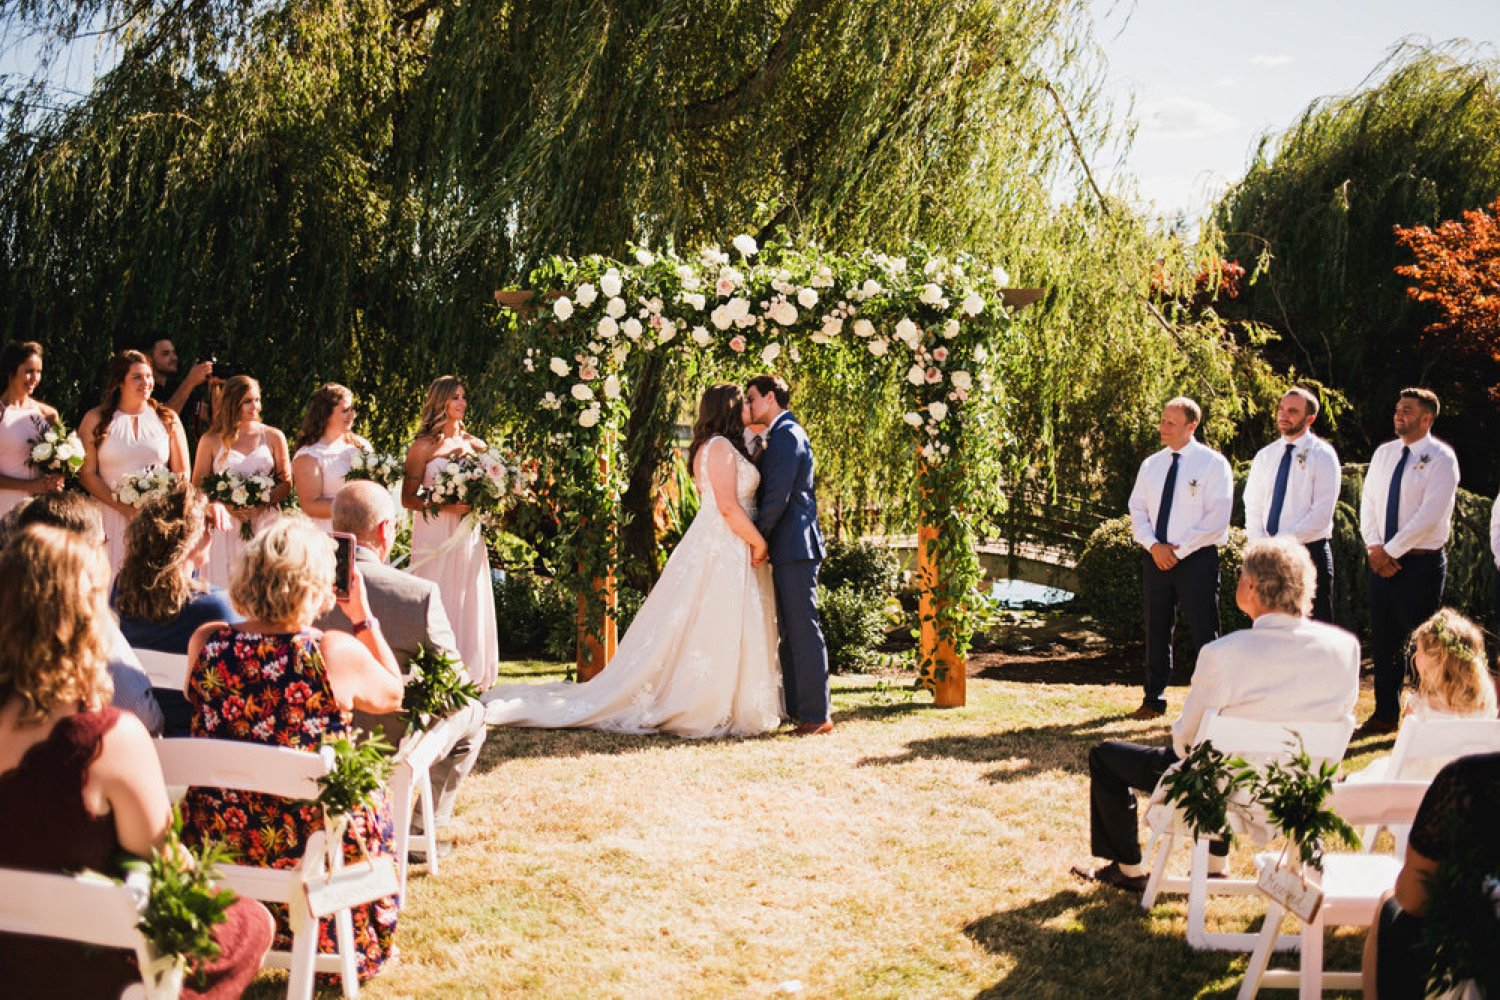 couple getting married in front of an arbor decorated with greenery and floral